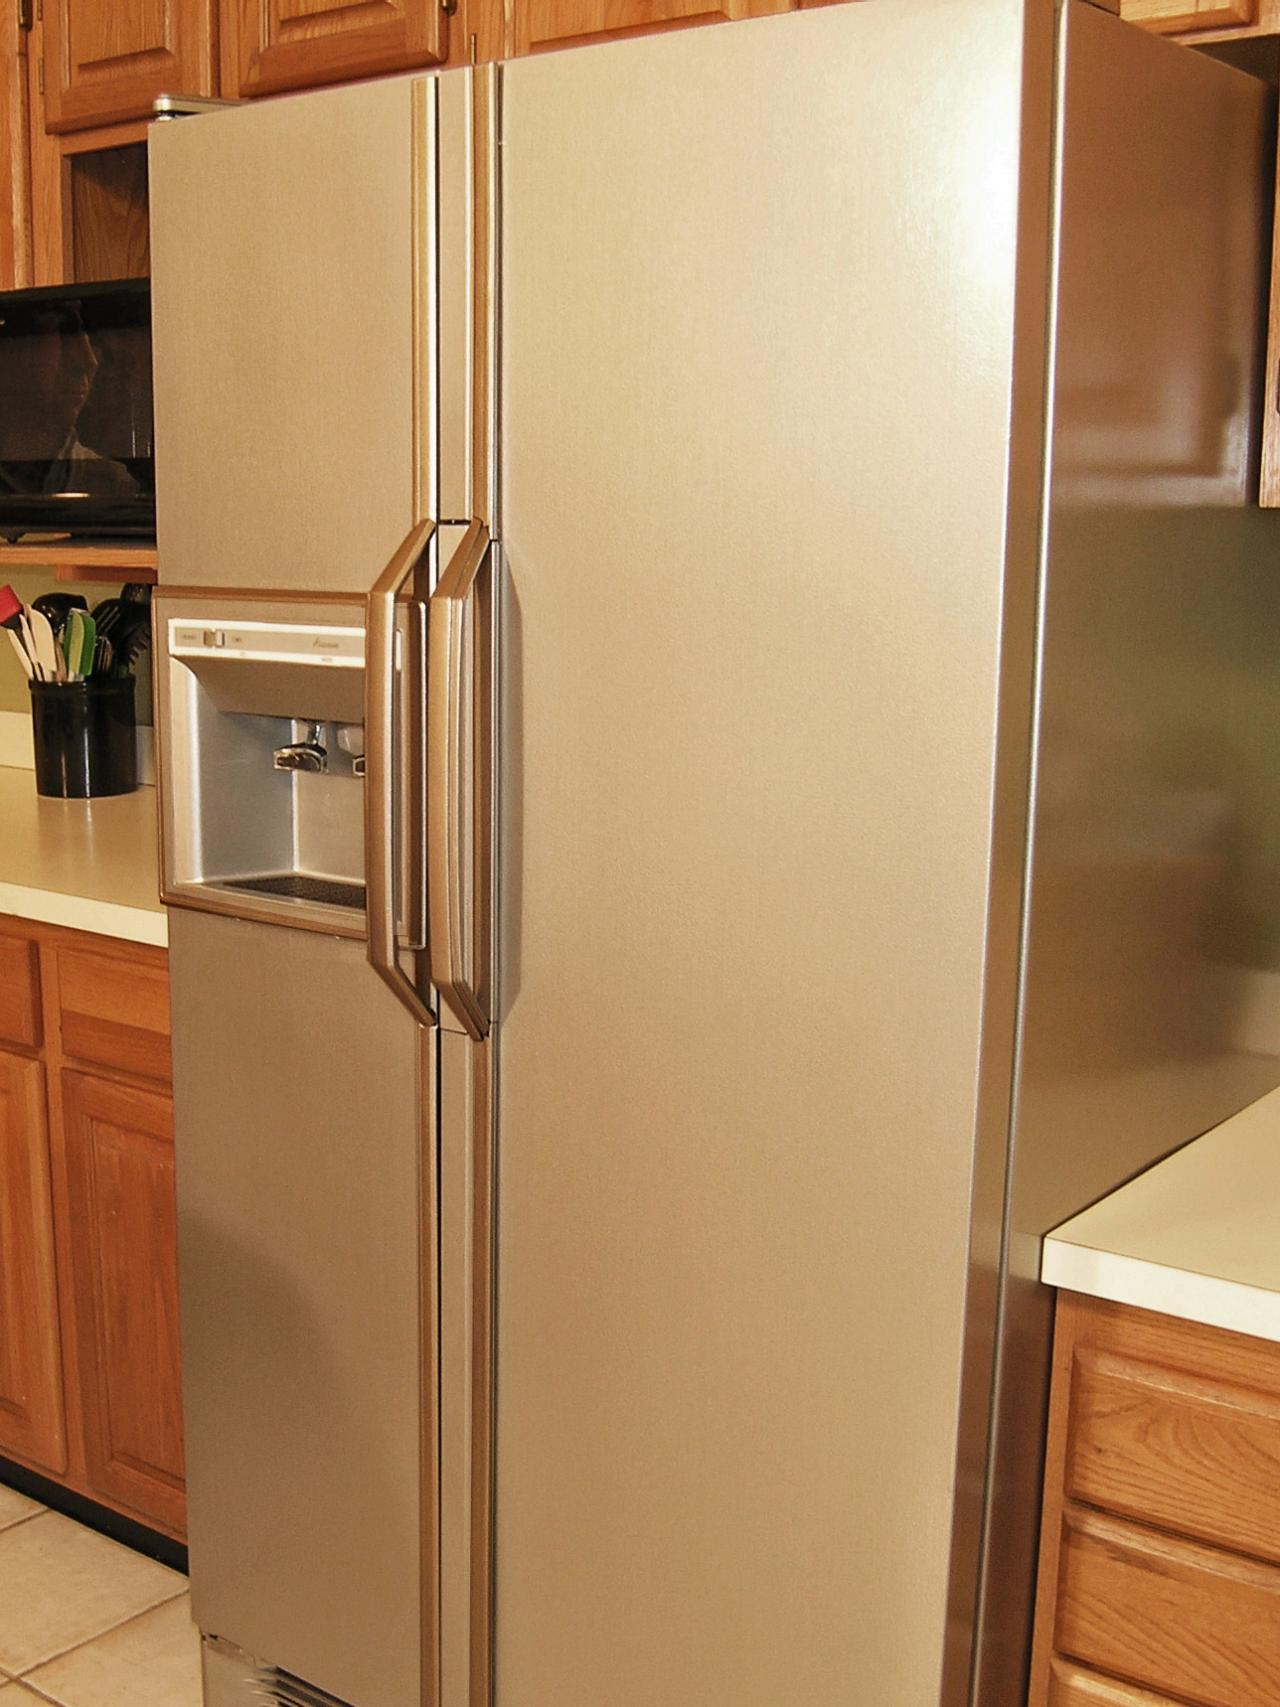 CI-Liquid-Stainless-Steel_Painted-Refrigerator-after_s3x4.jpg.rend.hgtvcom.1280.1707